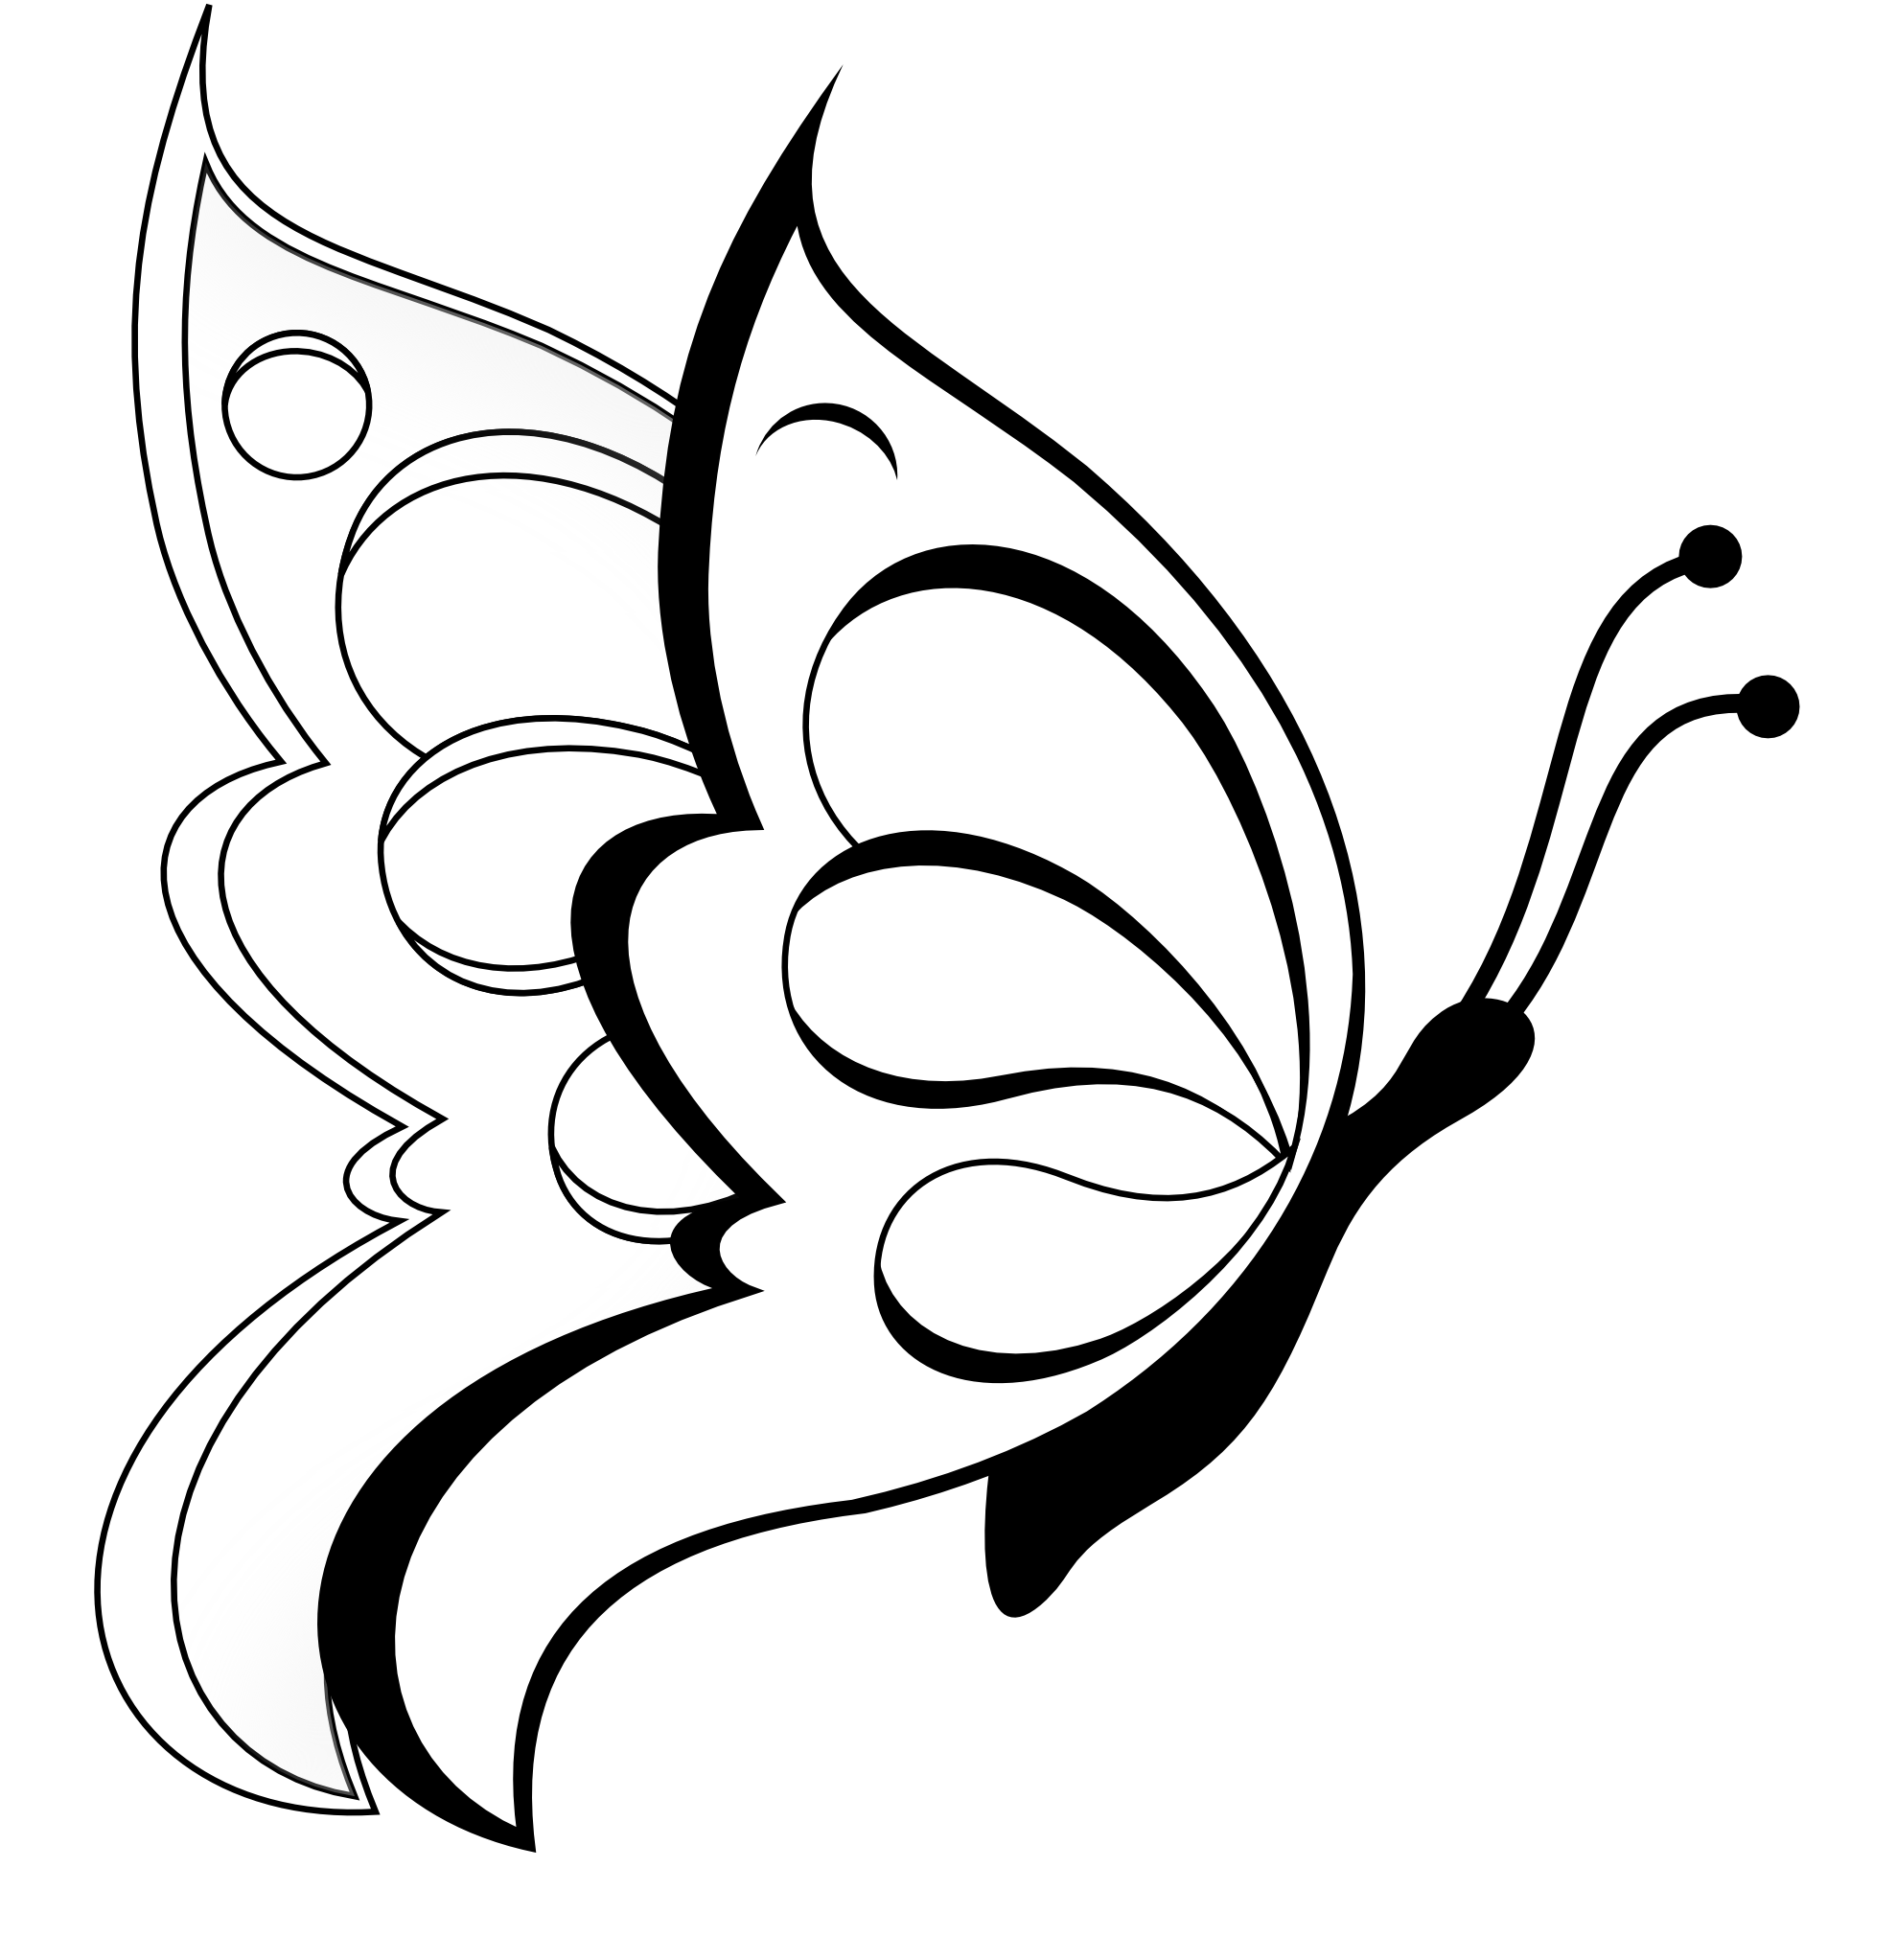 banner black and white Butterfly line art coloring. Sheet clipart black and white.